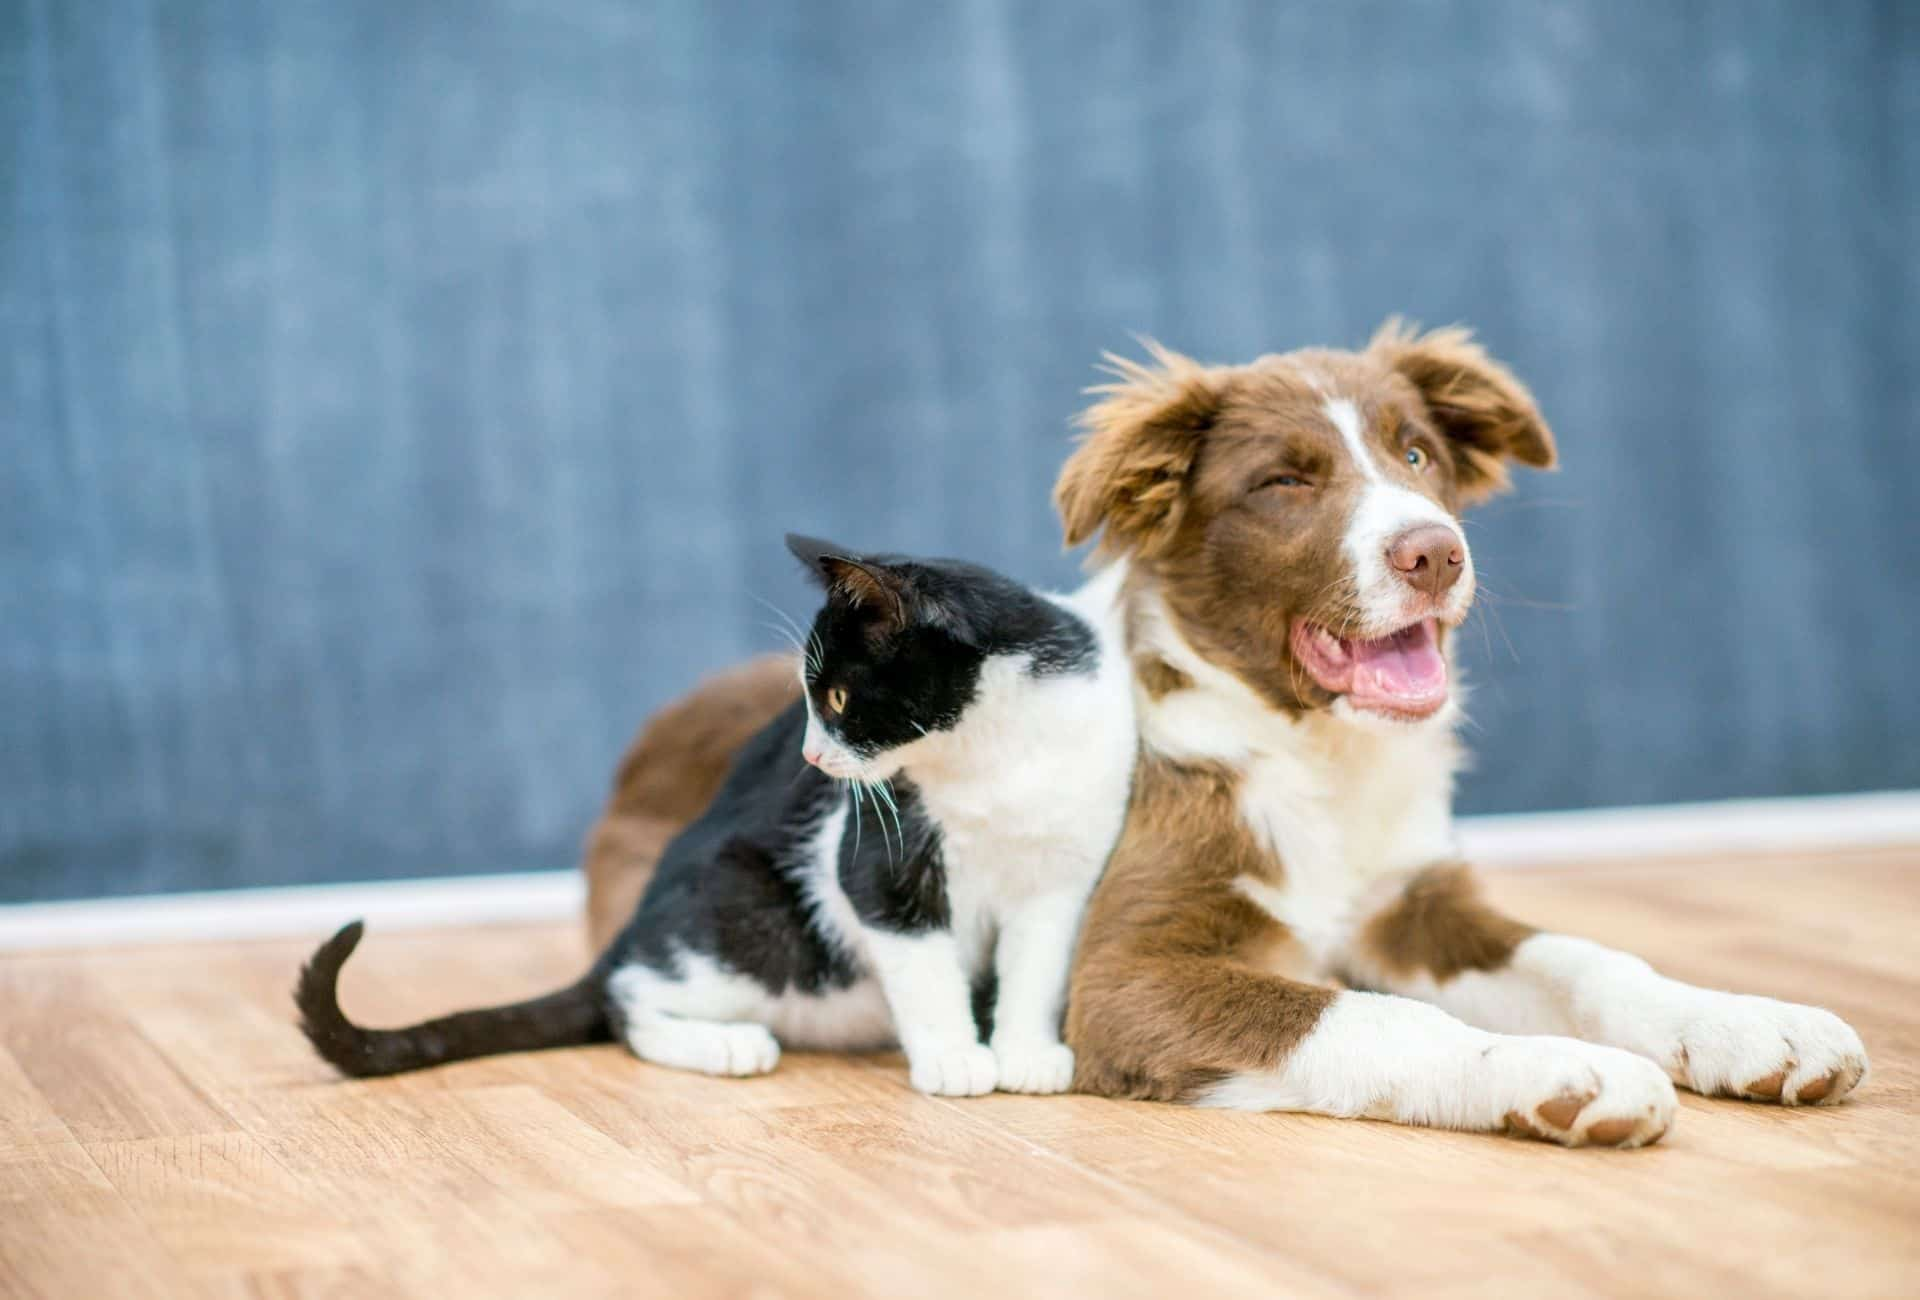 Dog and cat close to each other